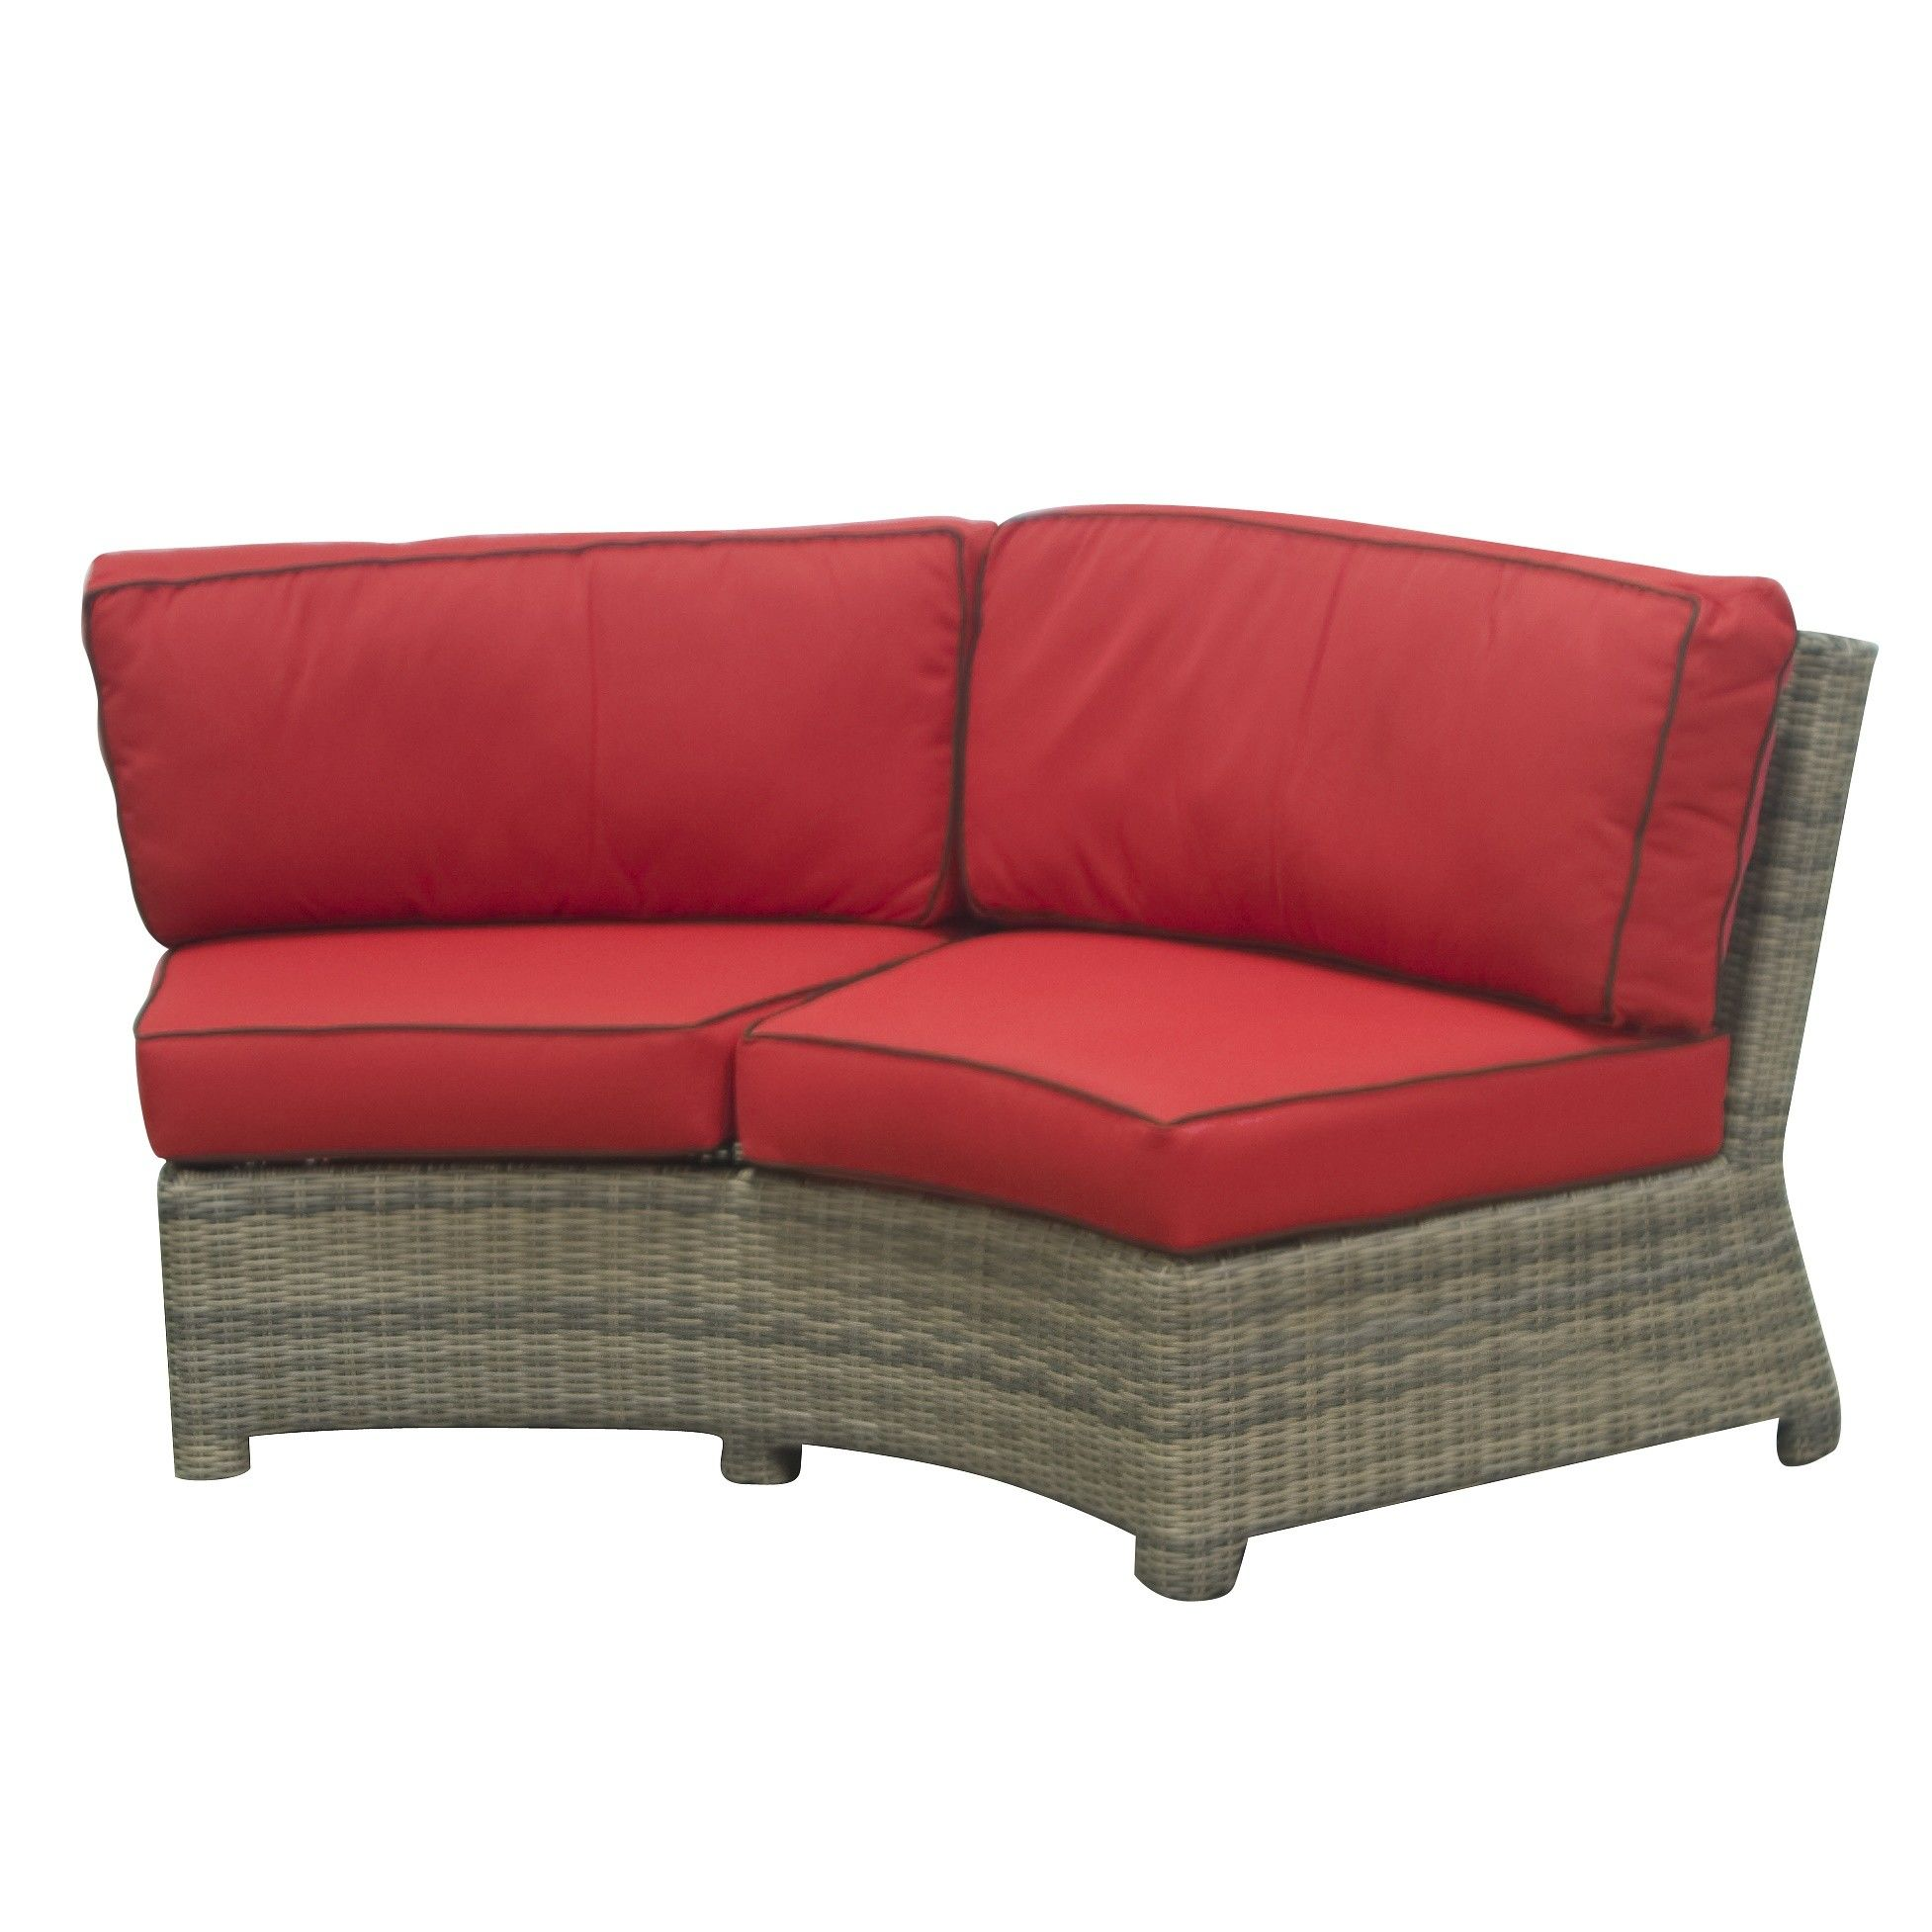 Wicker Curved Sectional Sofa Outdoor Wicker Sectional Couch